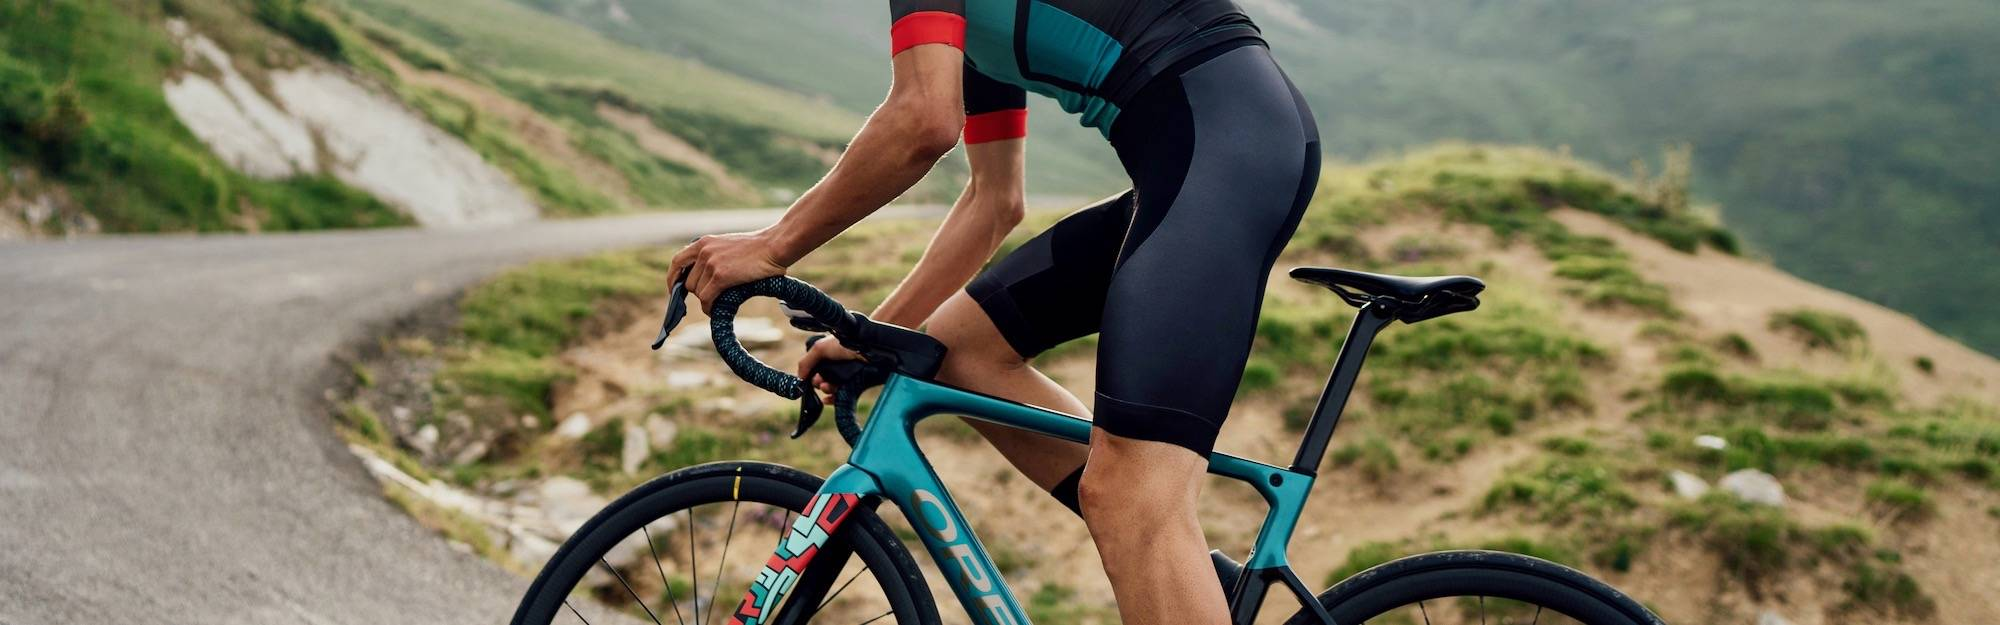 Riding the hills on Orbea road bikes.